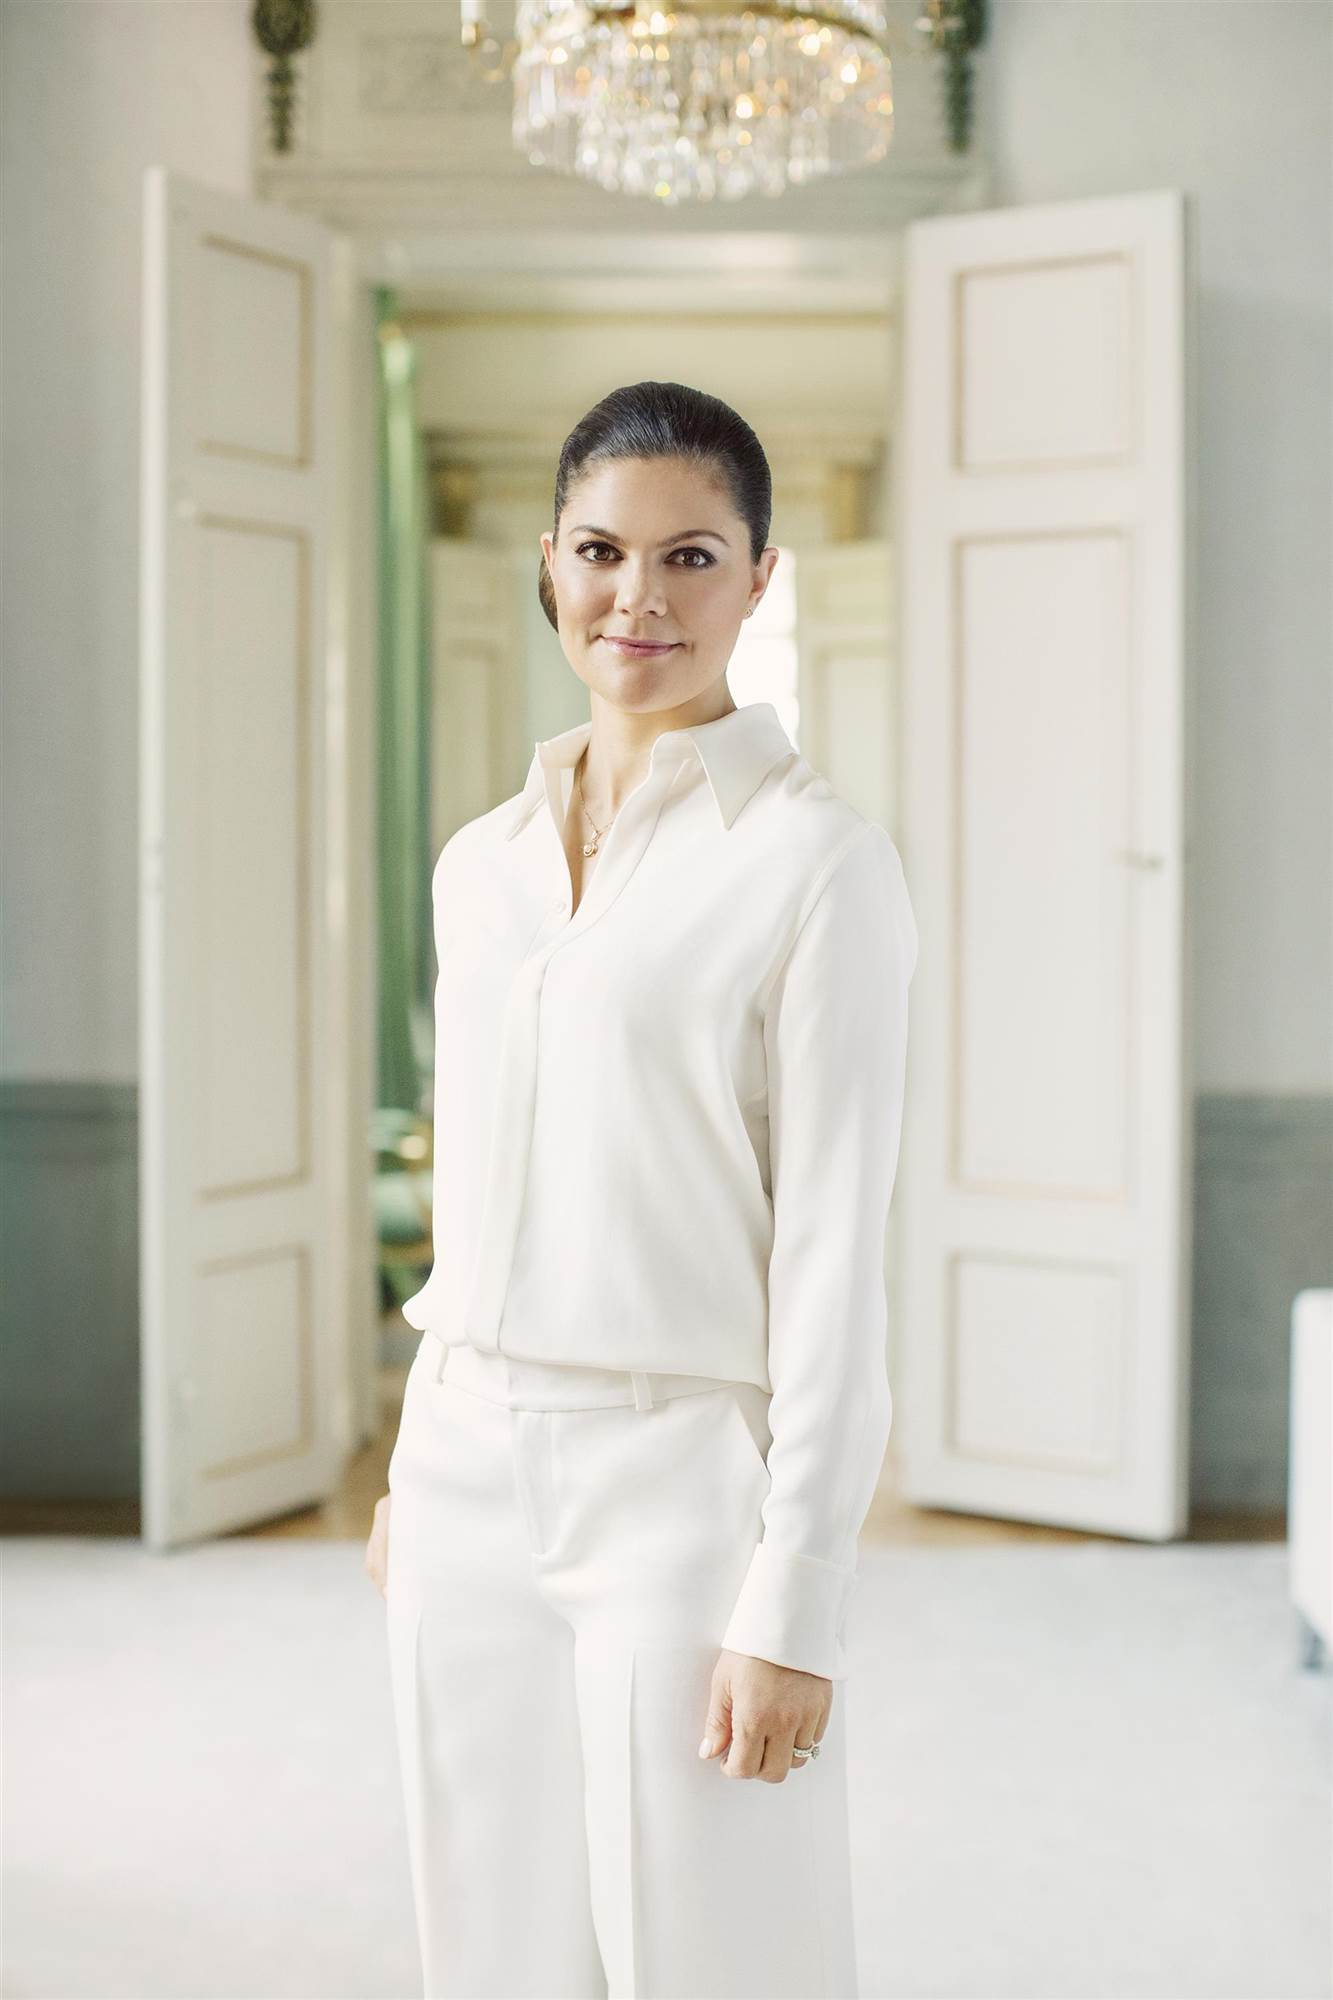 HRHCrownPrincessVictoria(2)photo Erika Gerdemark Royalcourt Sweden. Un palacio en blanco